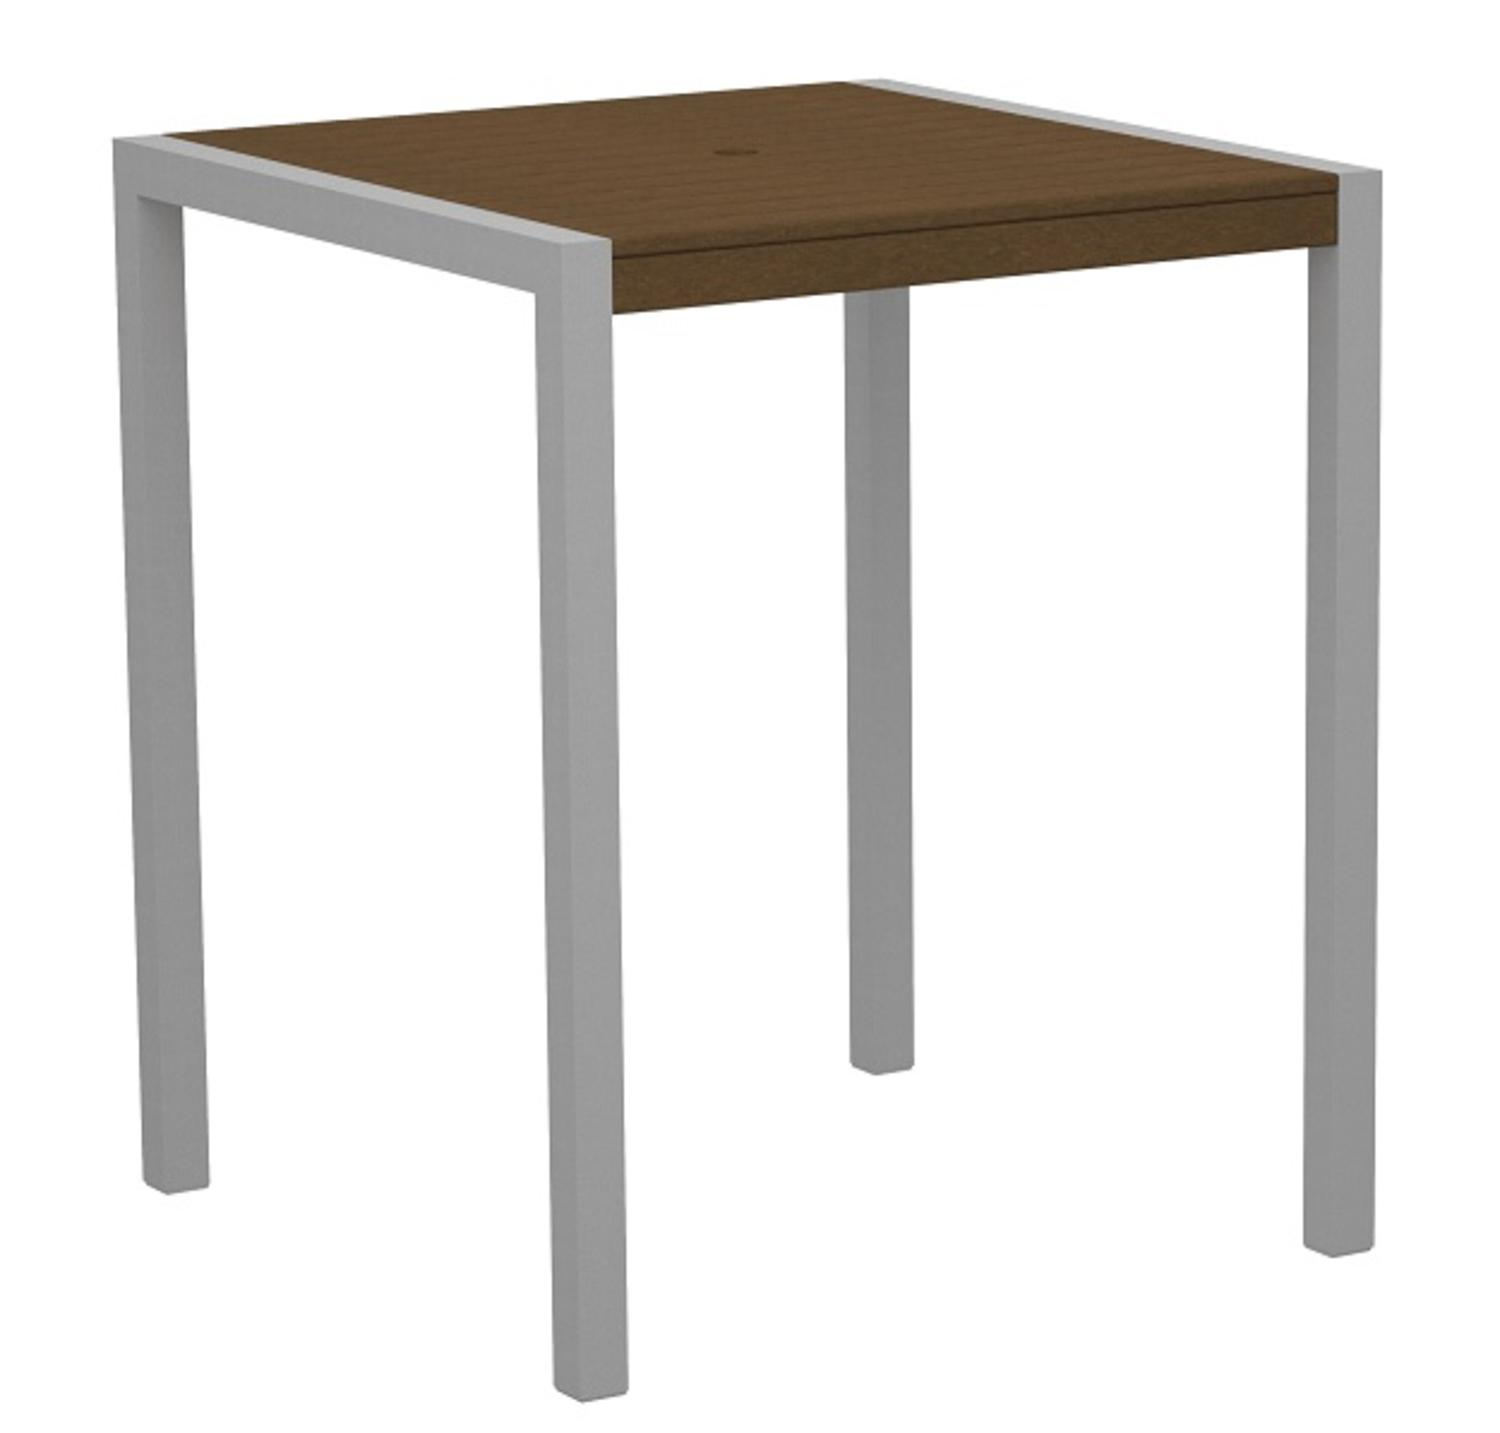 "42"" Outdoor Recycled Earth-Friendly Pub Table Teak Brown with Silver Frame by Eco-Friendly Furnishings"